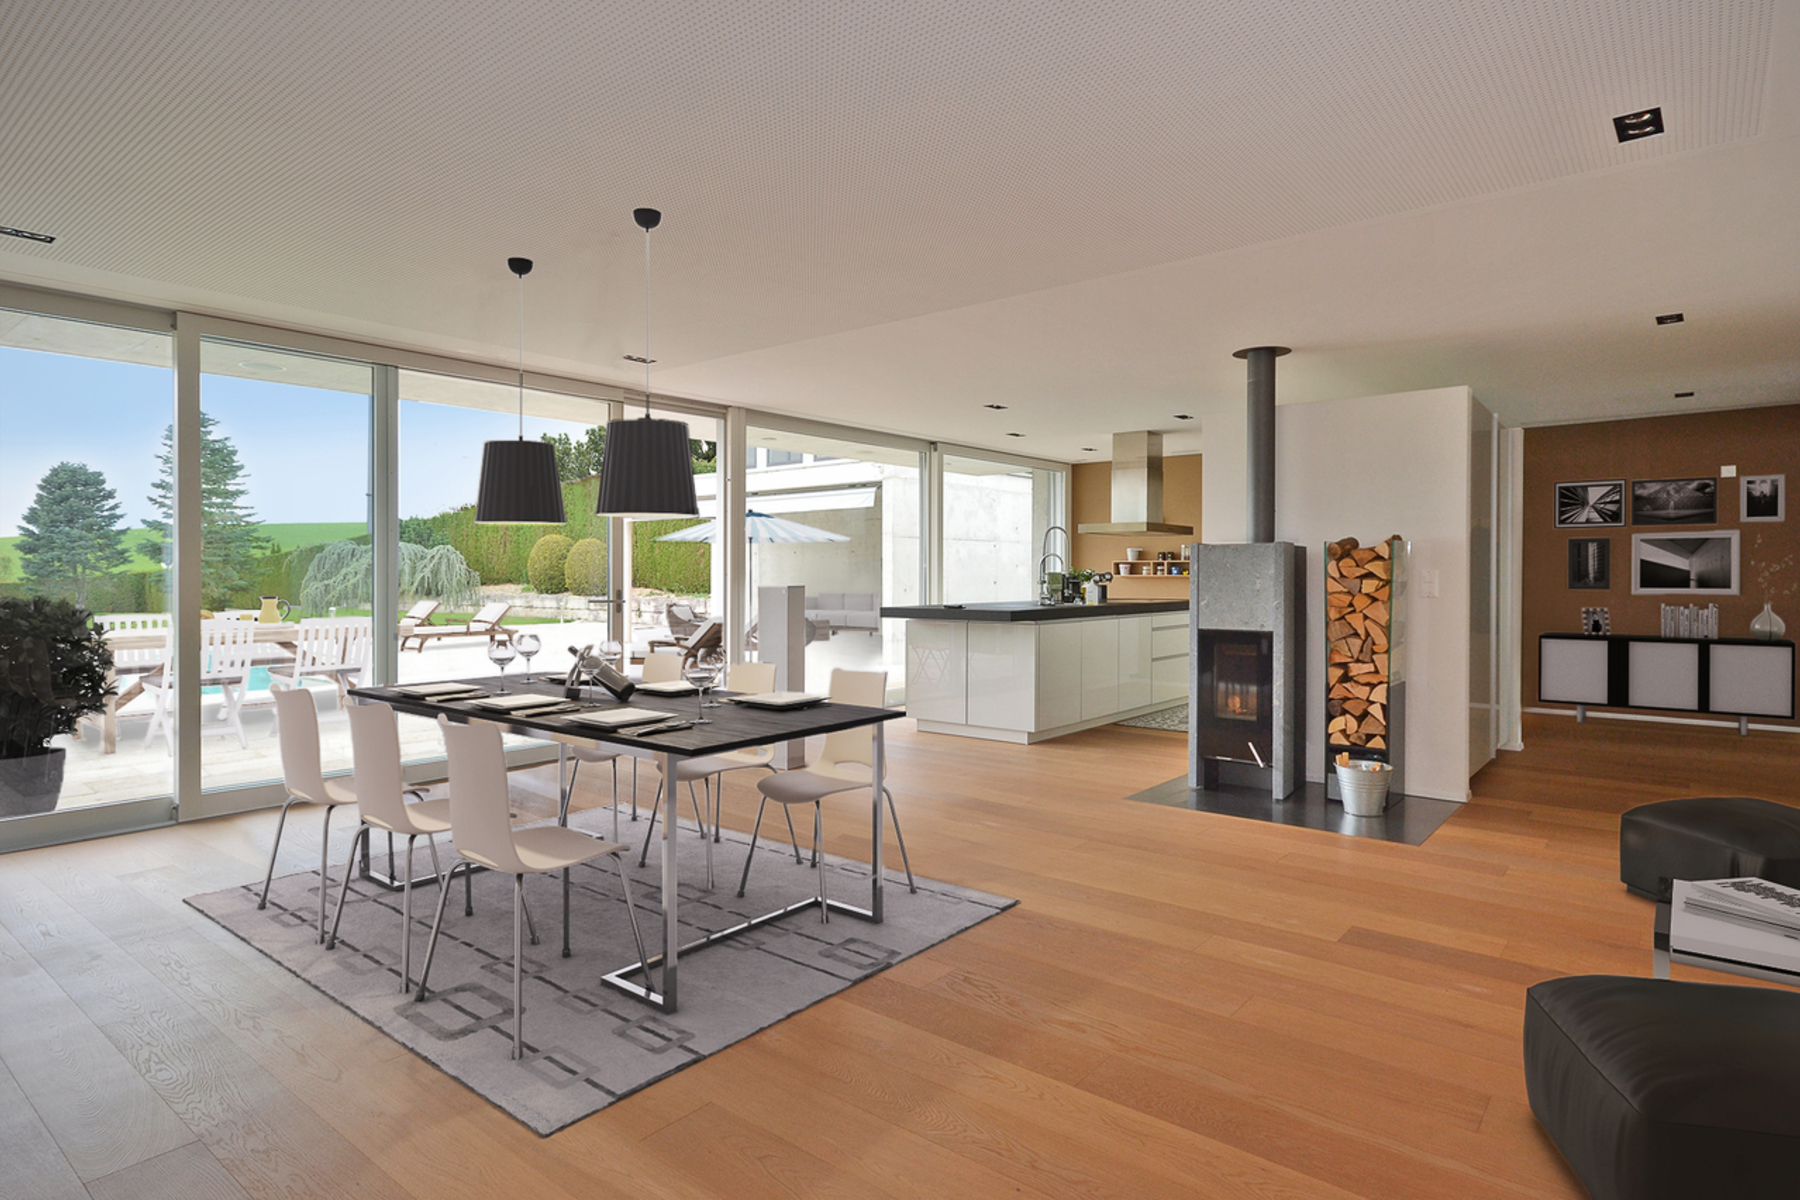 Single Family Home for Sale at Magnificent contemporary property on a beautiful plot Bulle Bulle, Fribourg, 1630 Switzerland